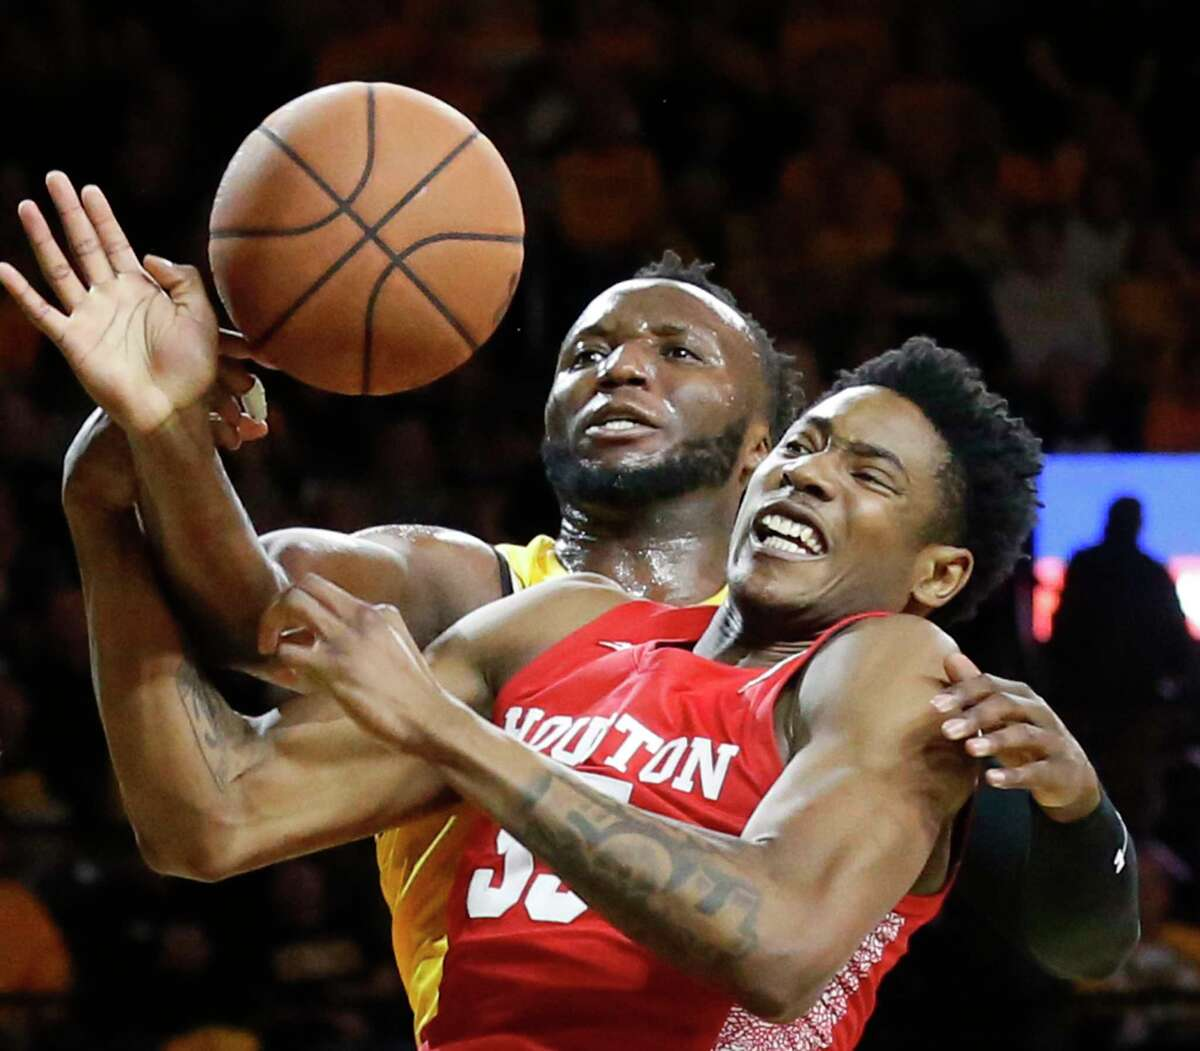 Wichita State center Morris Udeze, left, fights for a ball with Houston center Brison Gresham (55) during first-half NCAA college basketball game action Saturday, Jan. 18, 2020, in Wichita, Kan. (Bo Rader/The Wichita Eagle via AP)